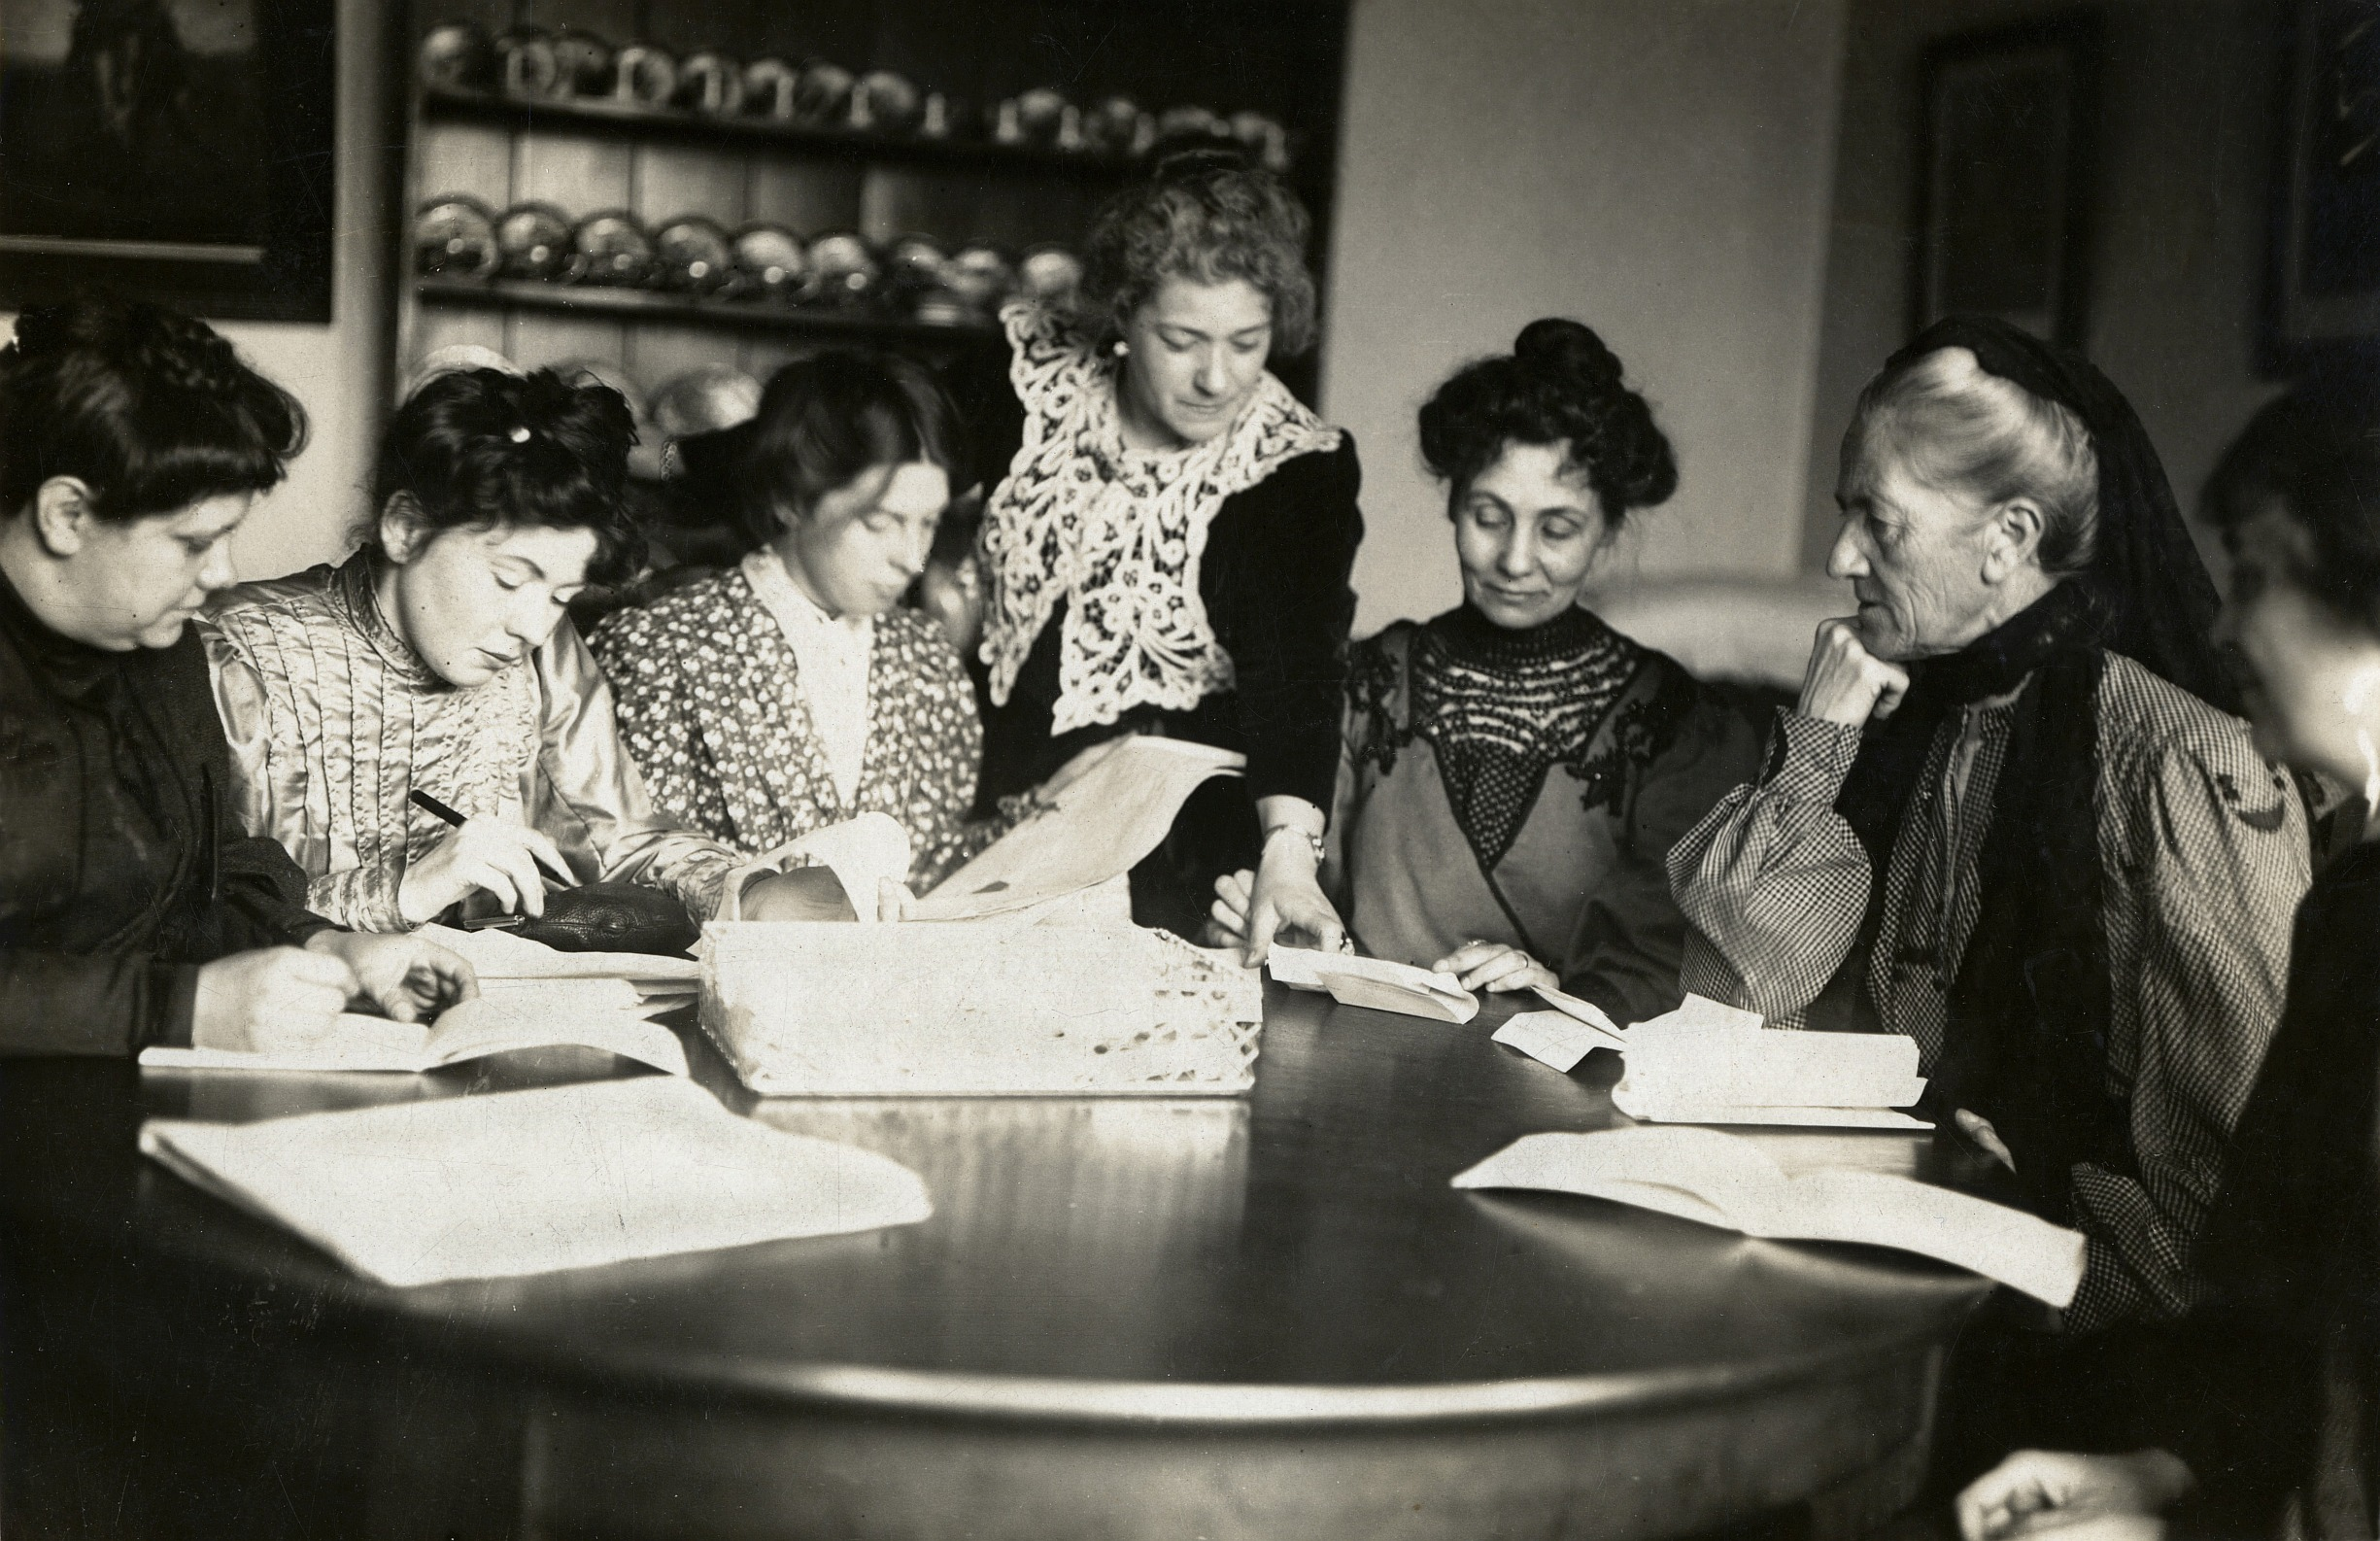 Meeting of Women's Social and Political Union, Flora Drummond, Christabel Pankhurst, Annie Kenney, Emmeline Pankhurst, Charlotte Despard with two others, working round a kitchen table; printed inscription on reverse 'Barratt's Photo Press Agency, 8 Salisbury Ct, Fleet St, EC'. Photo: The Women's Library collection/Library of the London School of Economics and Political Science. No known copyright restrictions.